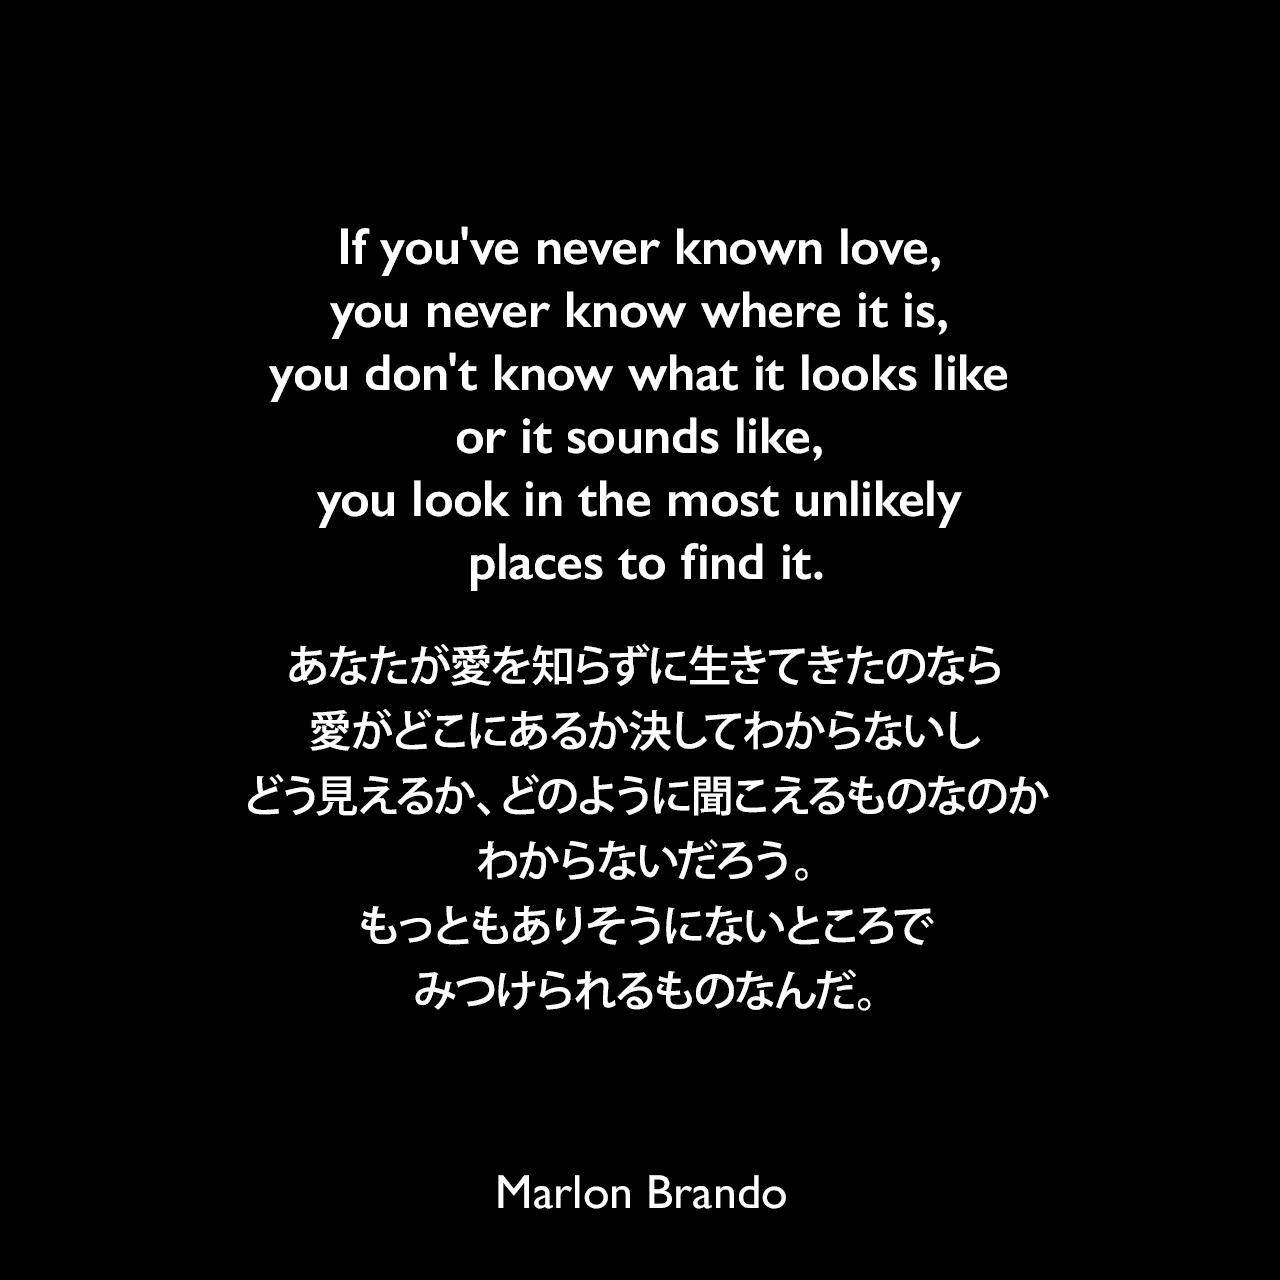 If you've never known love, you never know where it is, you don't know what it looks like or it sounds like, you look in the most unlikely places to find it.あなたが愛を知らずに生きてきたのなら、愛がどこにあるか決してわからないし、どう見えるか、どのように聞こえるものなのかわからないだろう。もっともありそうにないところでみつけられるものなんだ。